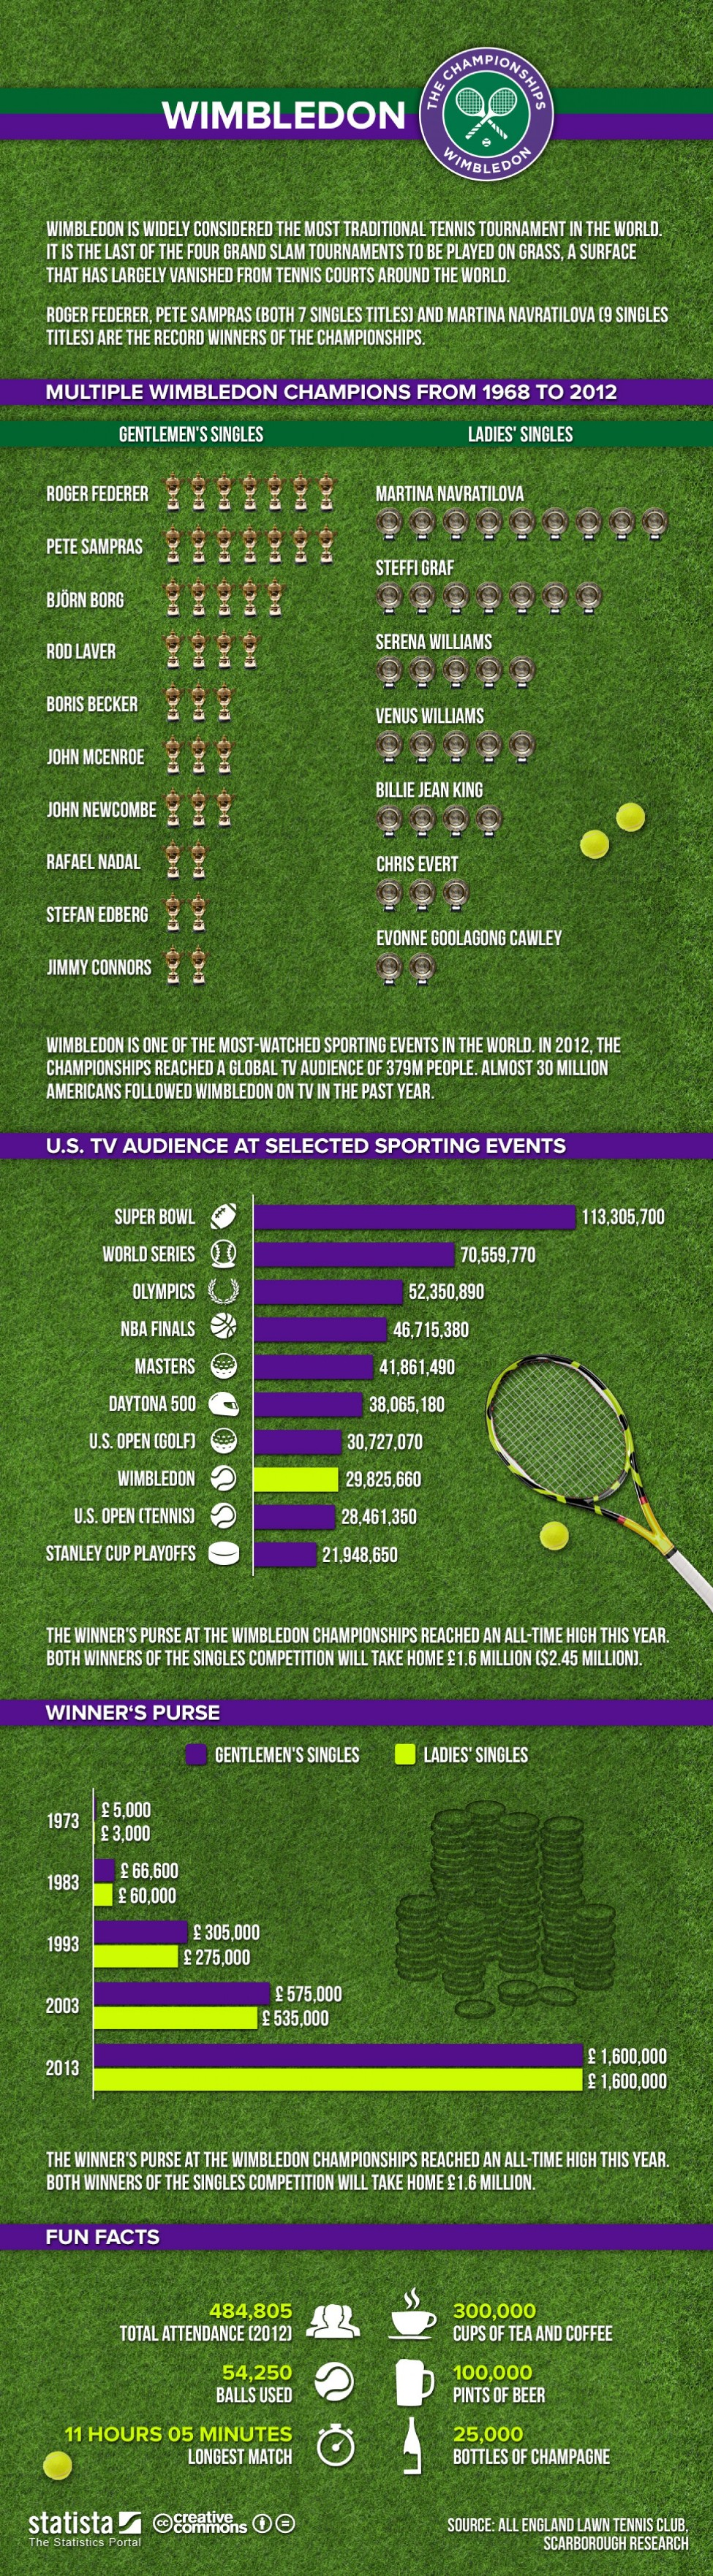 4. The Wimbledon Tournament